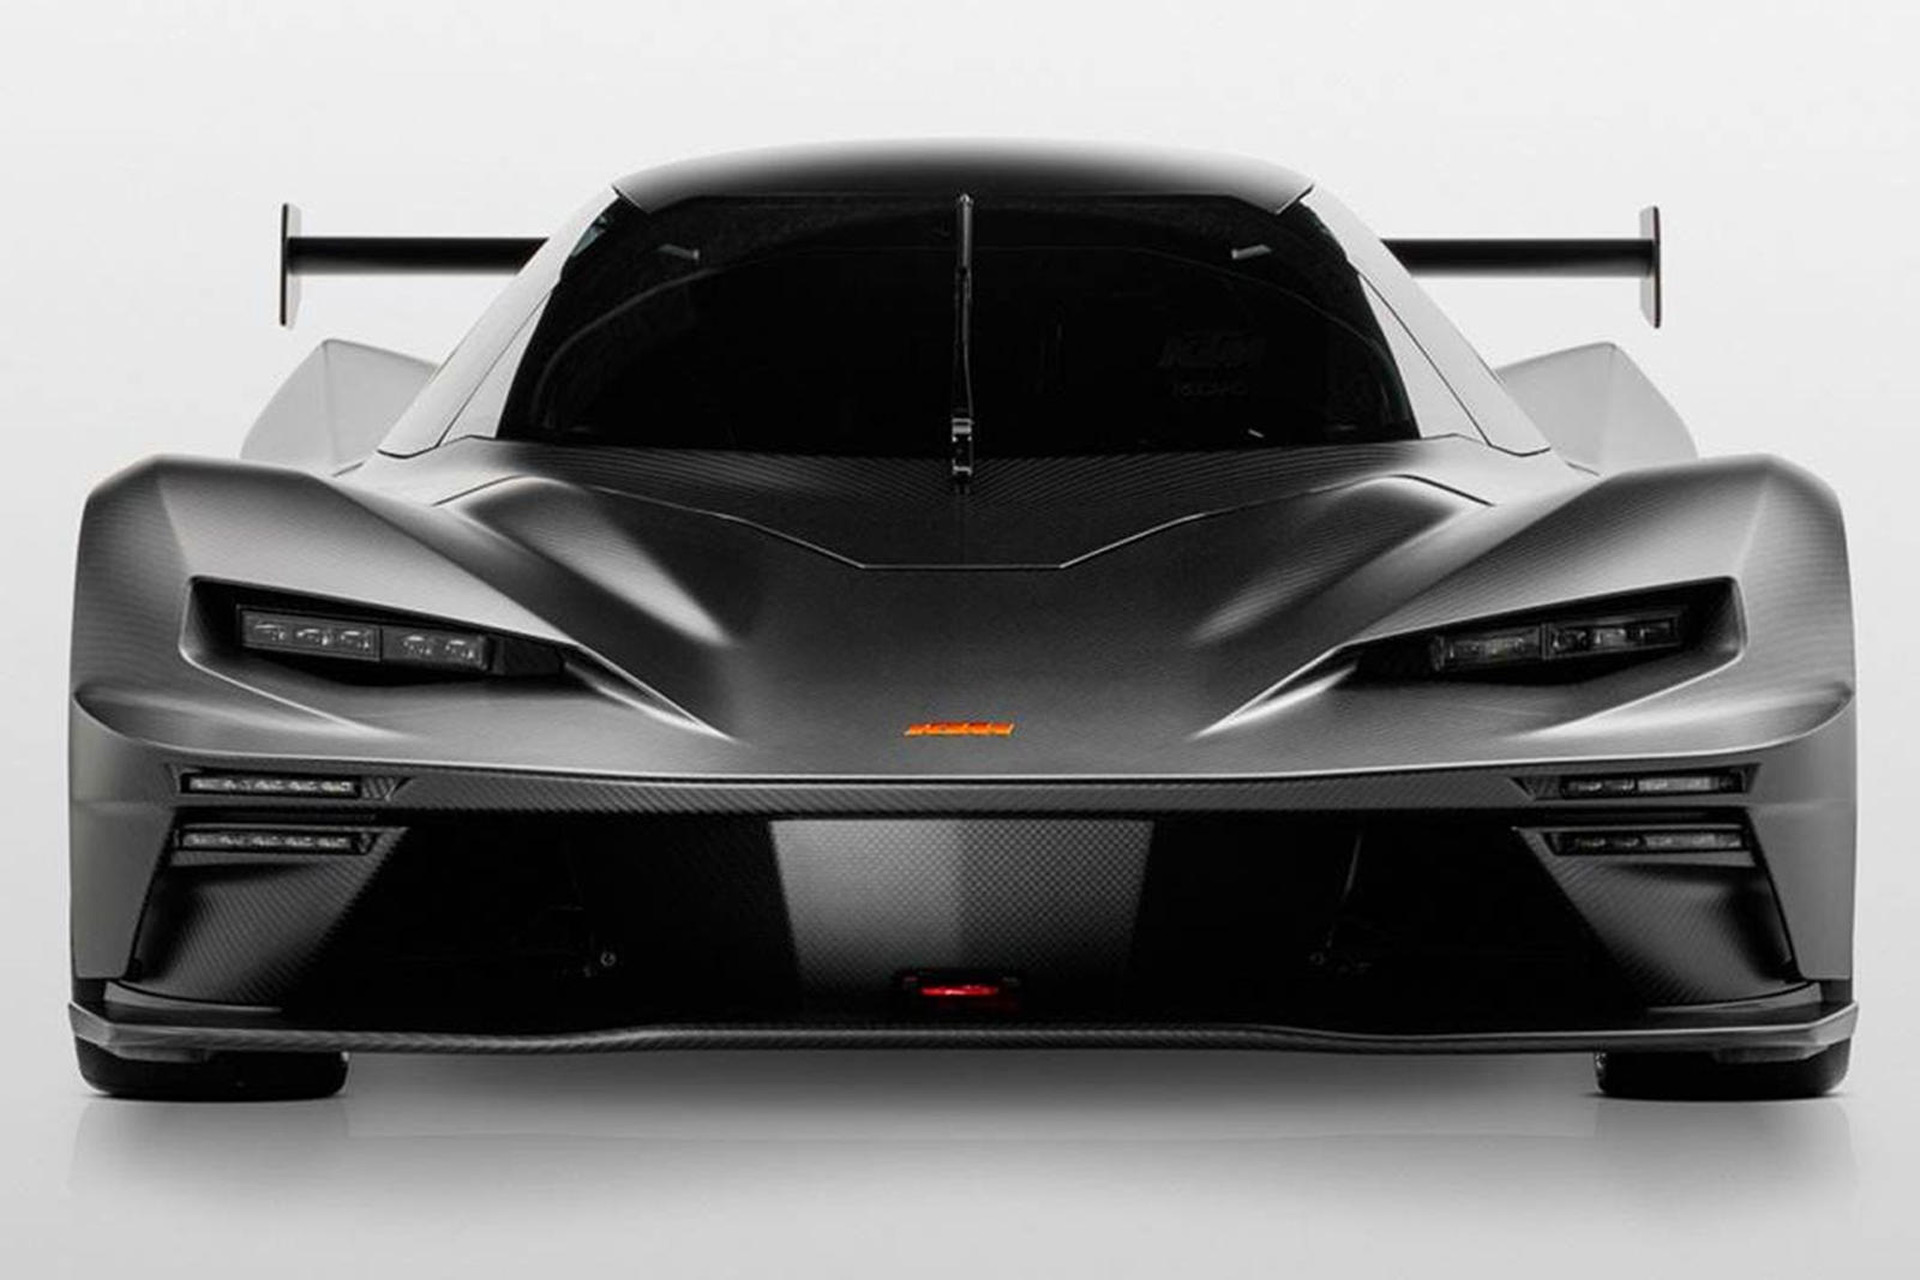 2021-ktm-x-bow-gtx-race-car_100765303_h